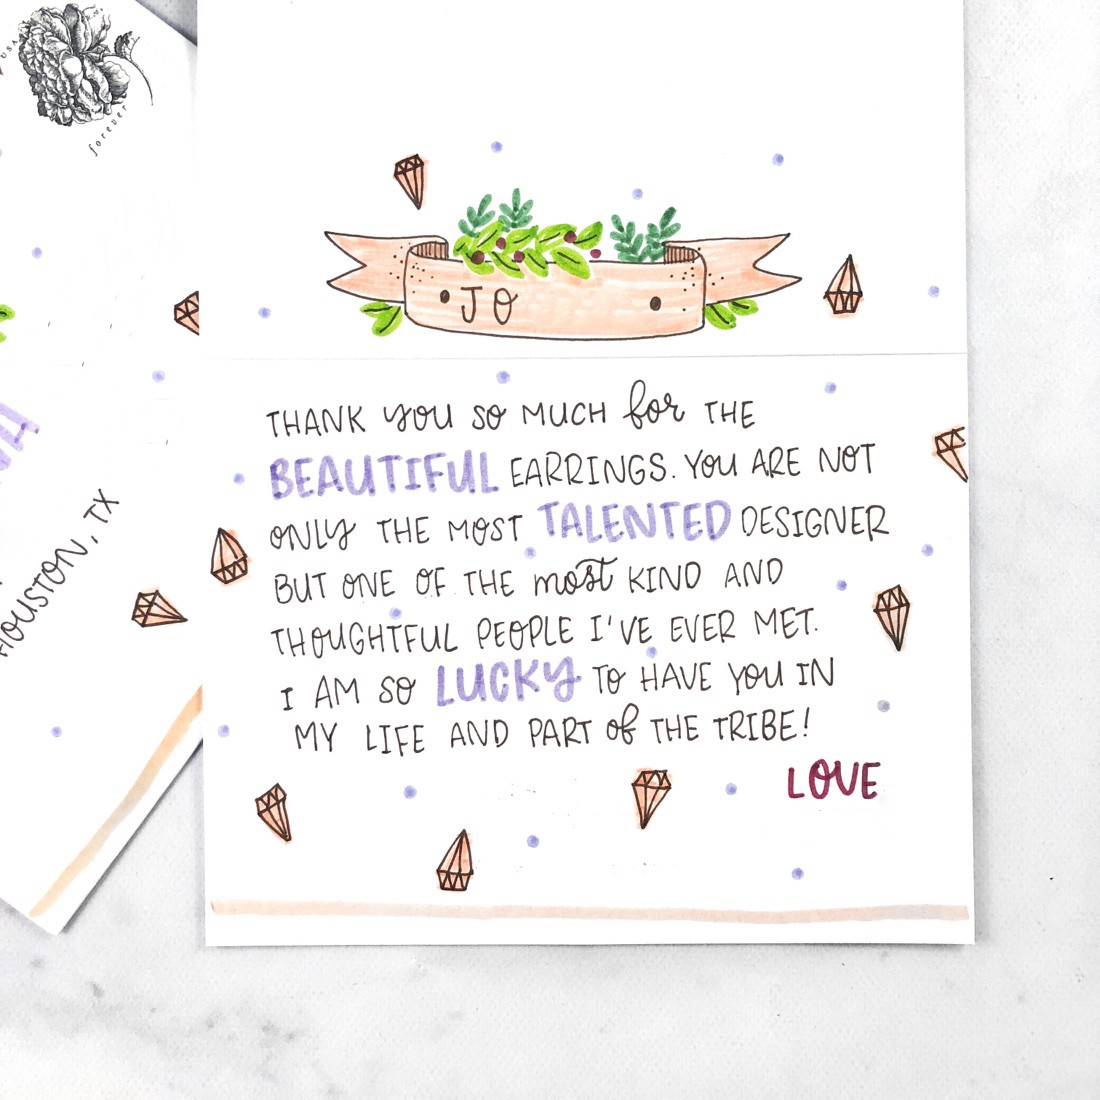 Write A Letter To Your Friend About Your Holiday Sample Letters To